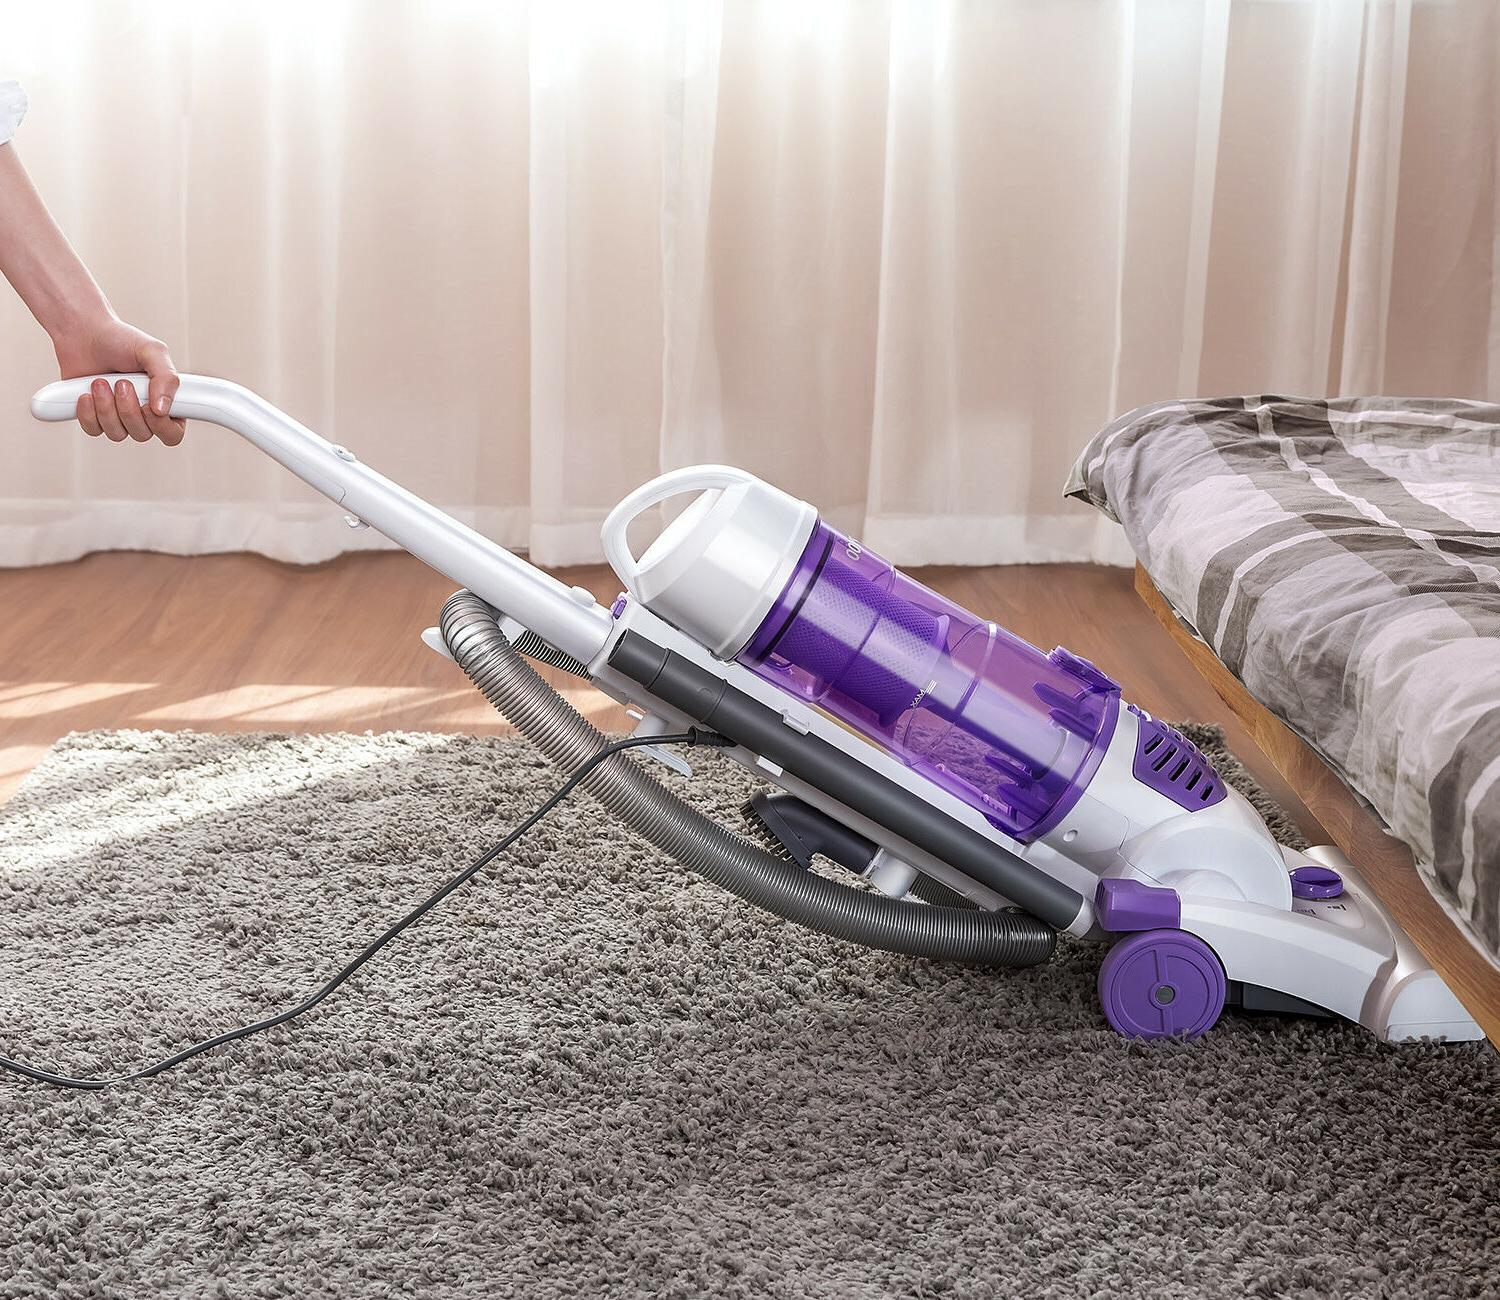 PUPPYOO Vacuum Cleaner Bagless Portable 1200W 2.9L